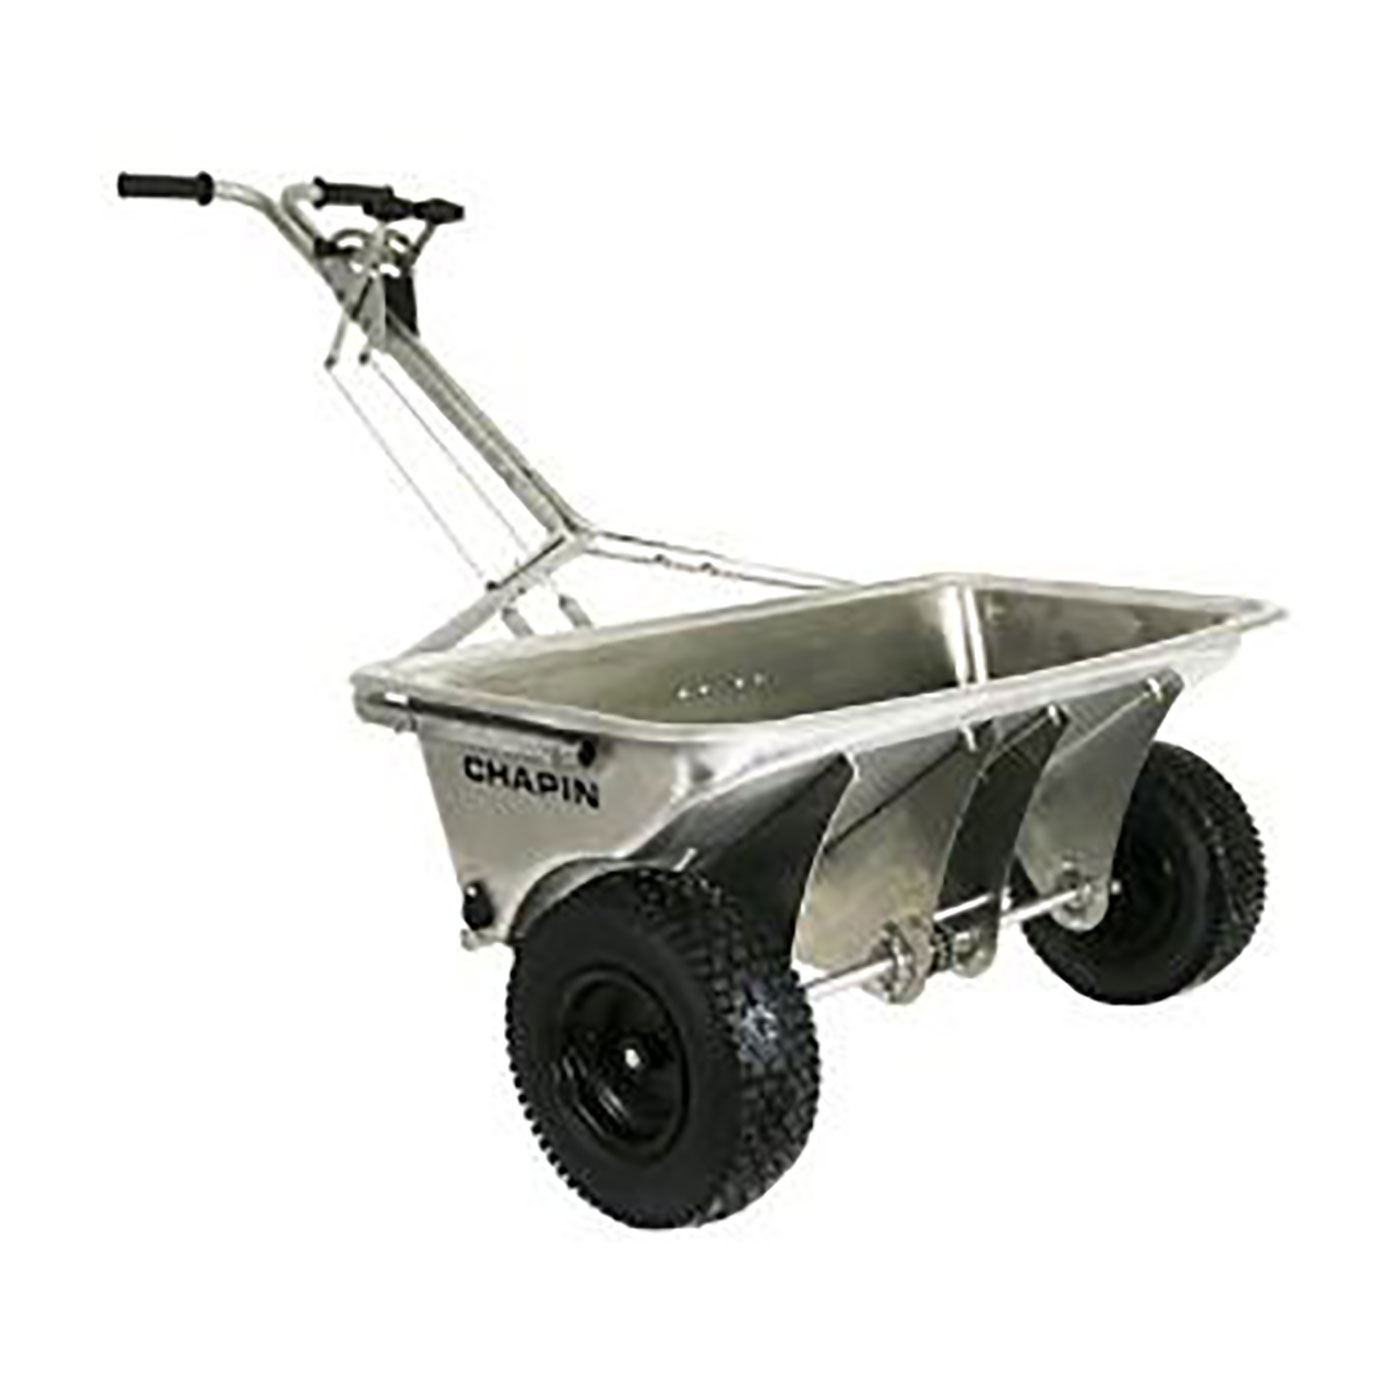 Chapin 200 lb Professional Stainless Steel Rock Salt Drop Spreader